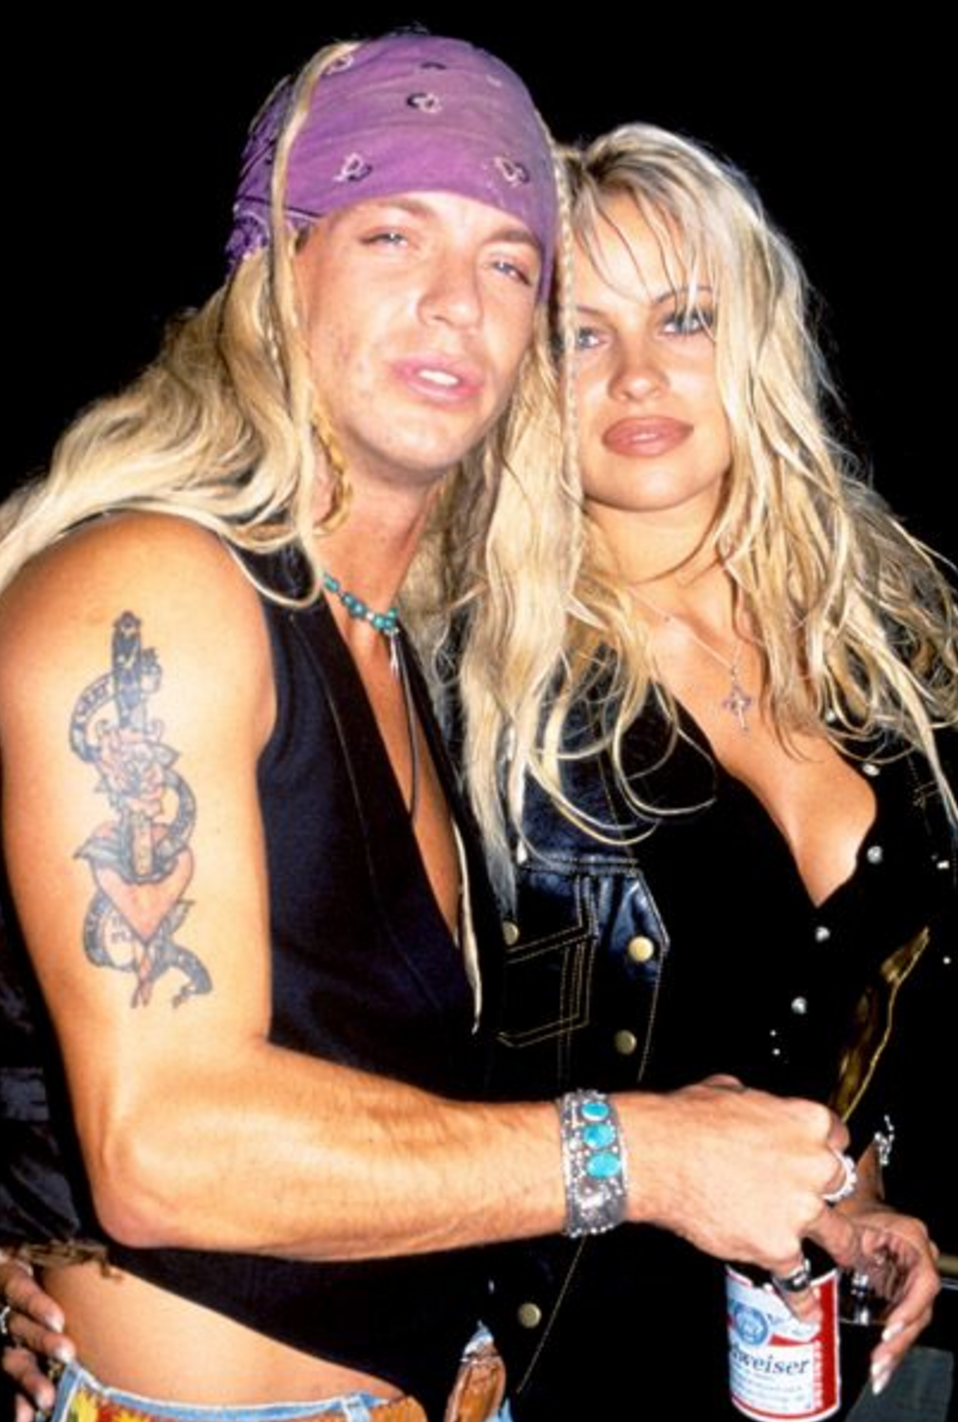 Is Bret Michaels Married Pretty bret michaels & pamela anderson | young pamela anderson